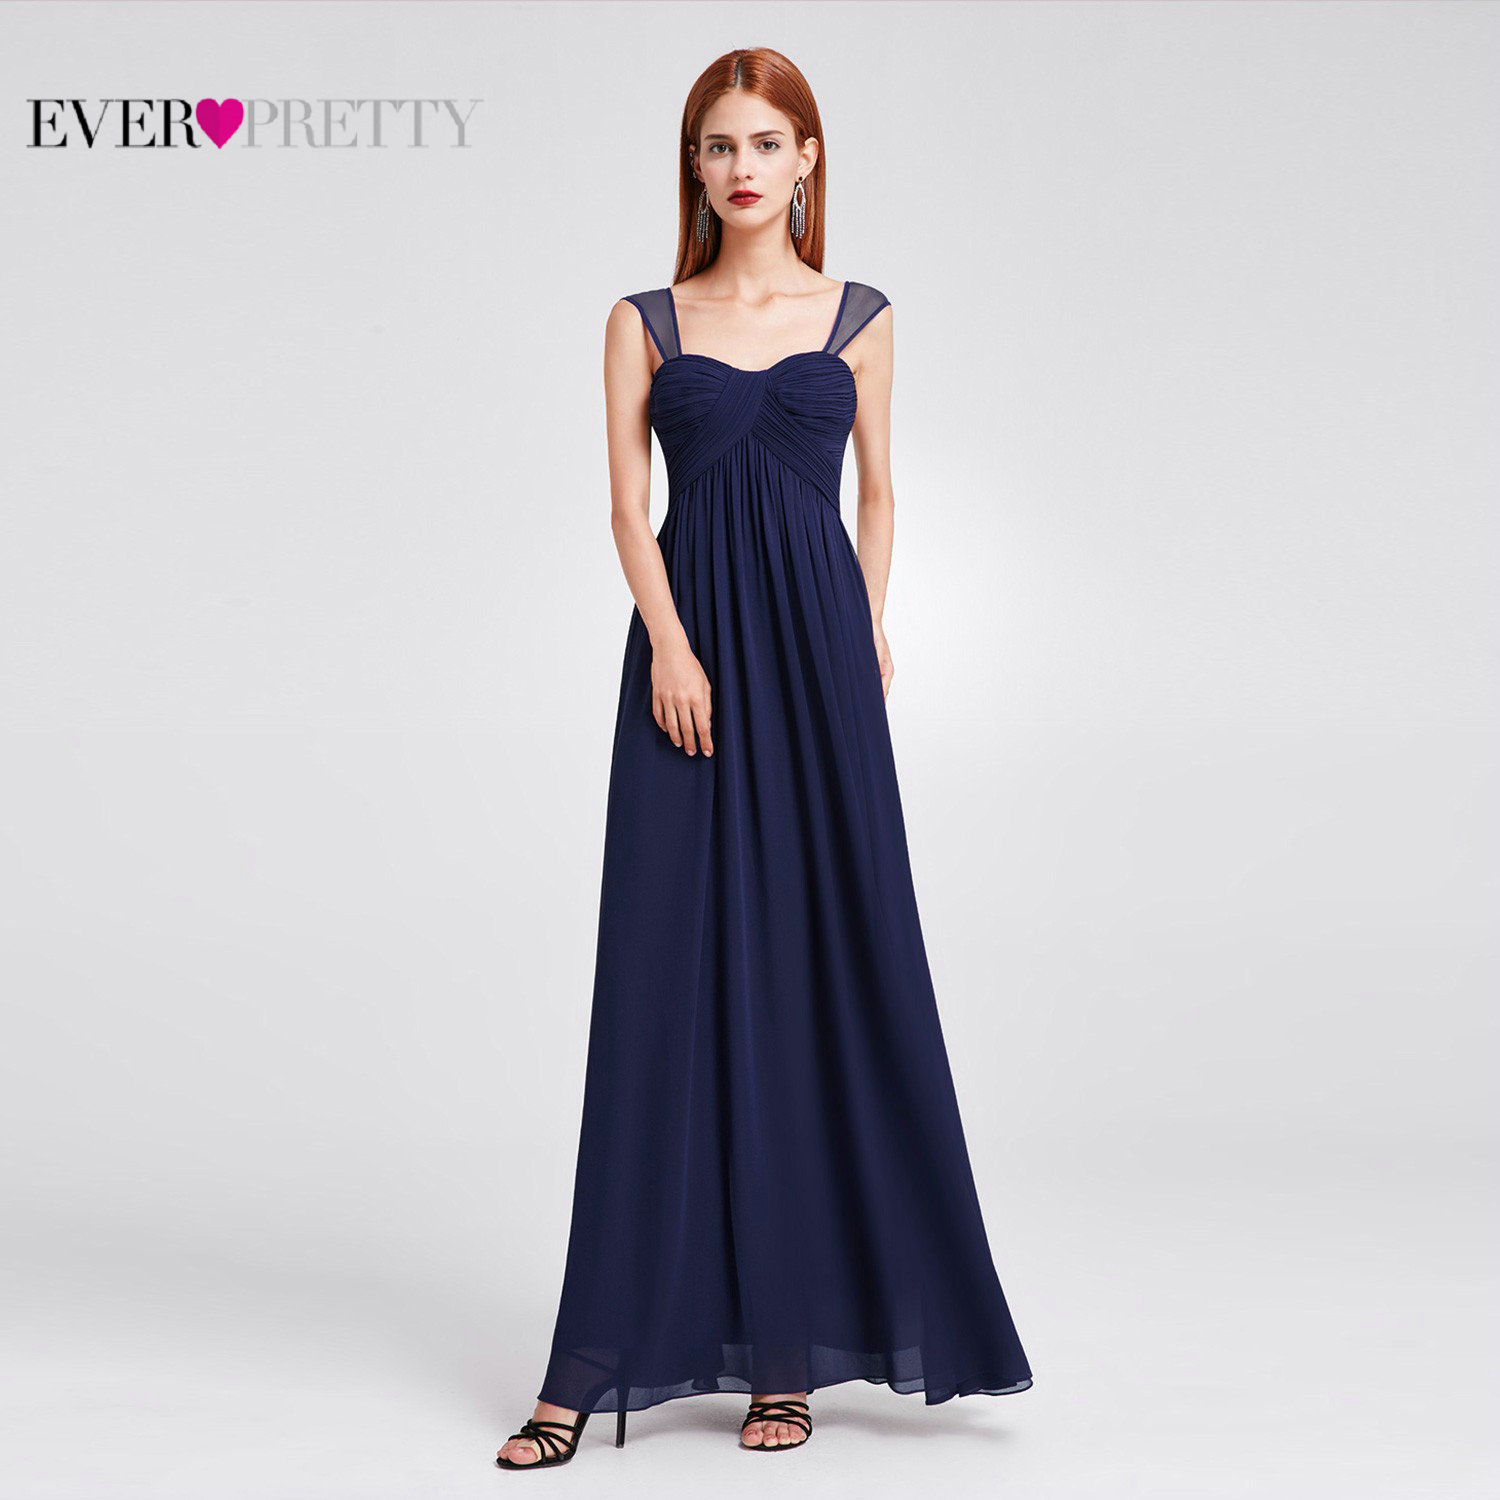 Ever-pretty Women Double V-neck Dress Formal Evening Celebrity Pageant Prom Gown